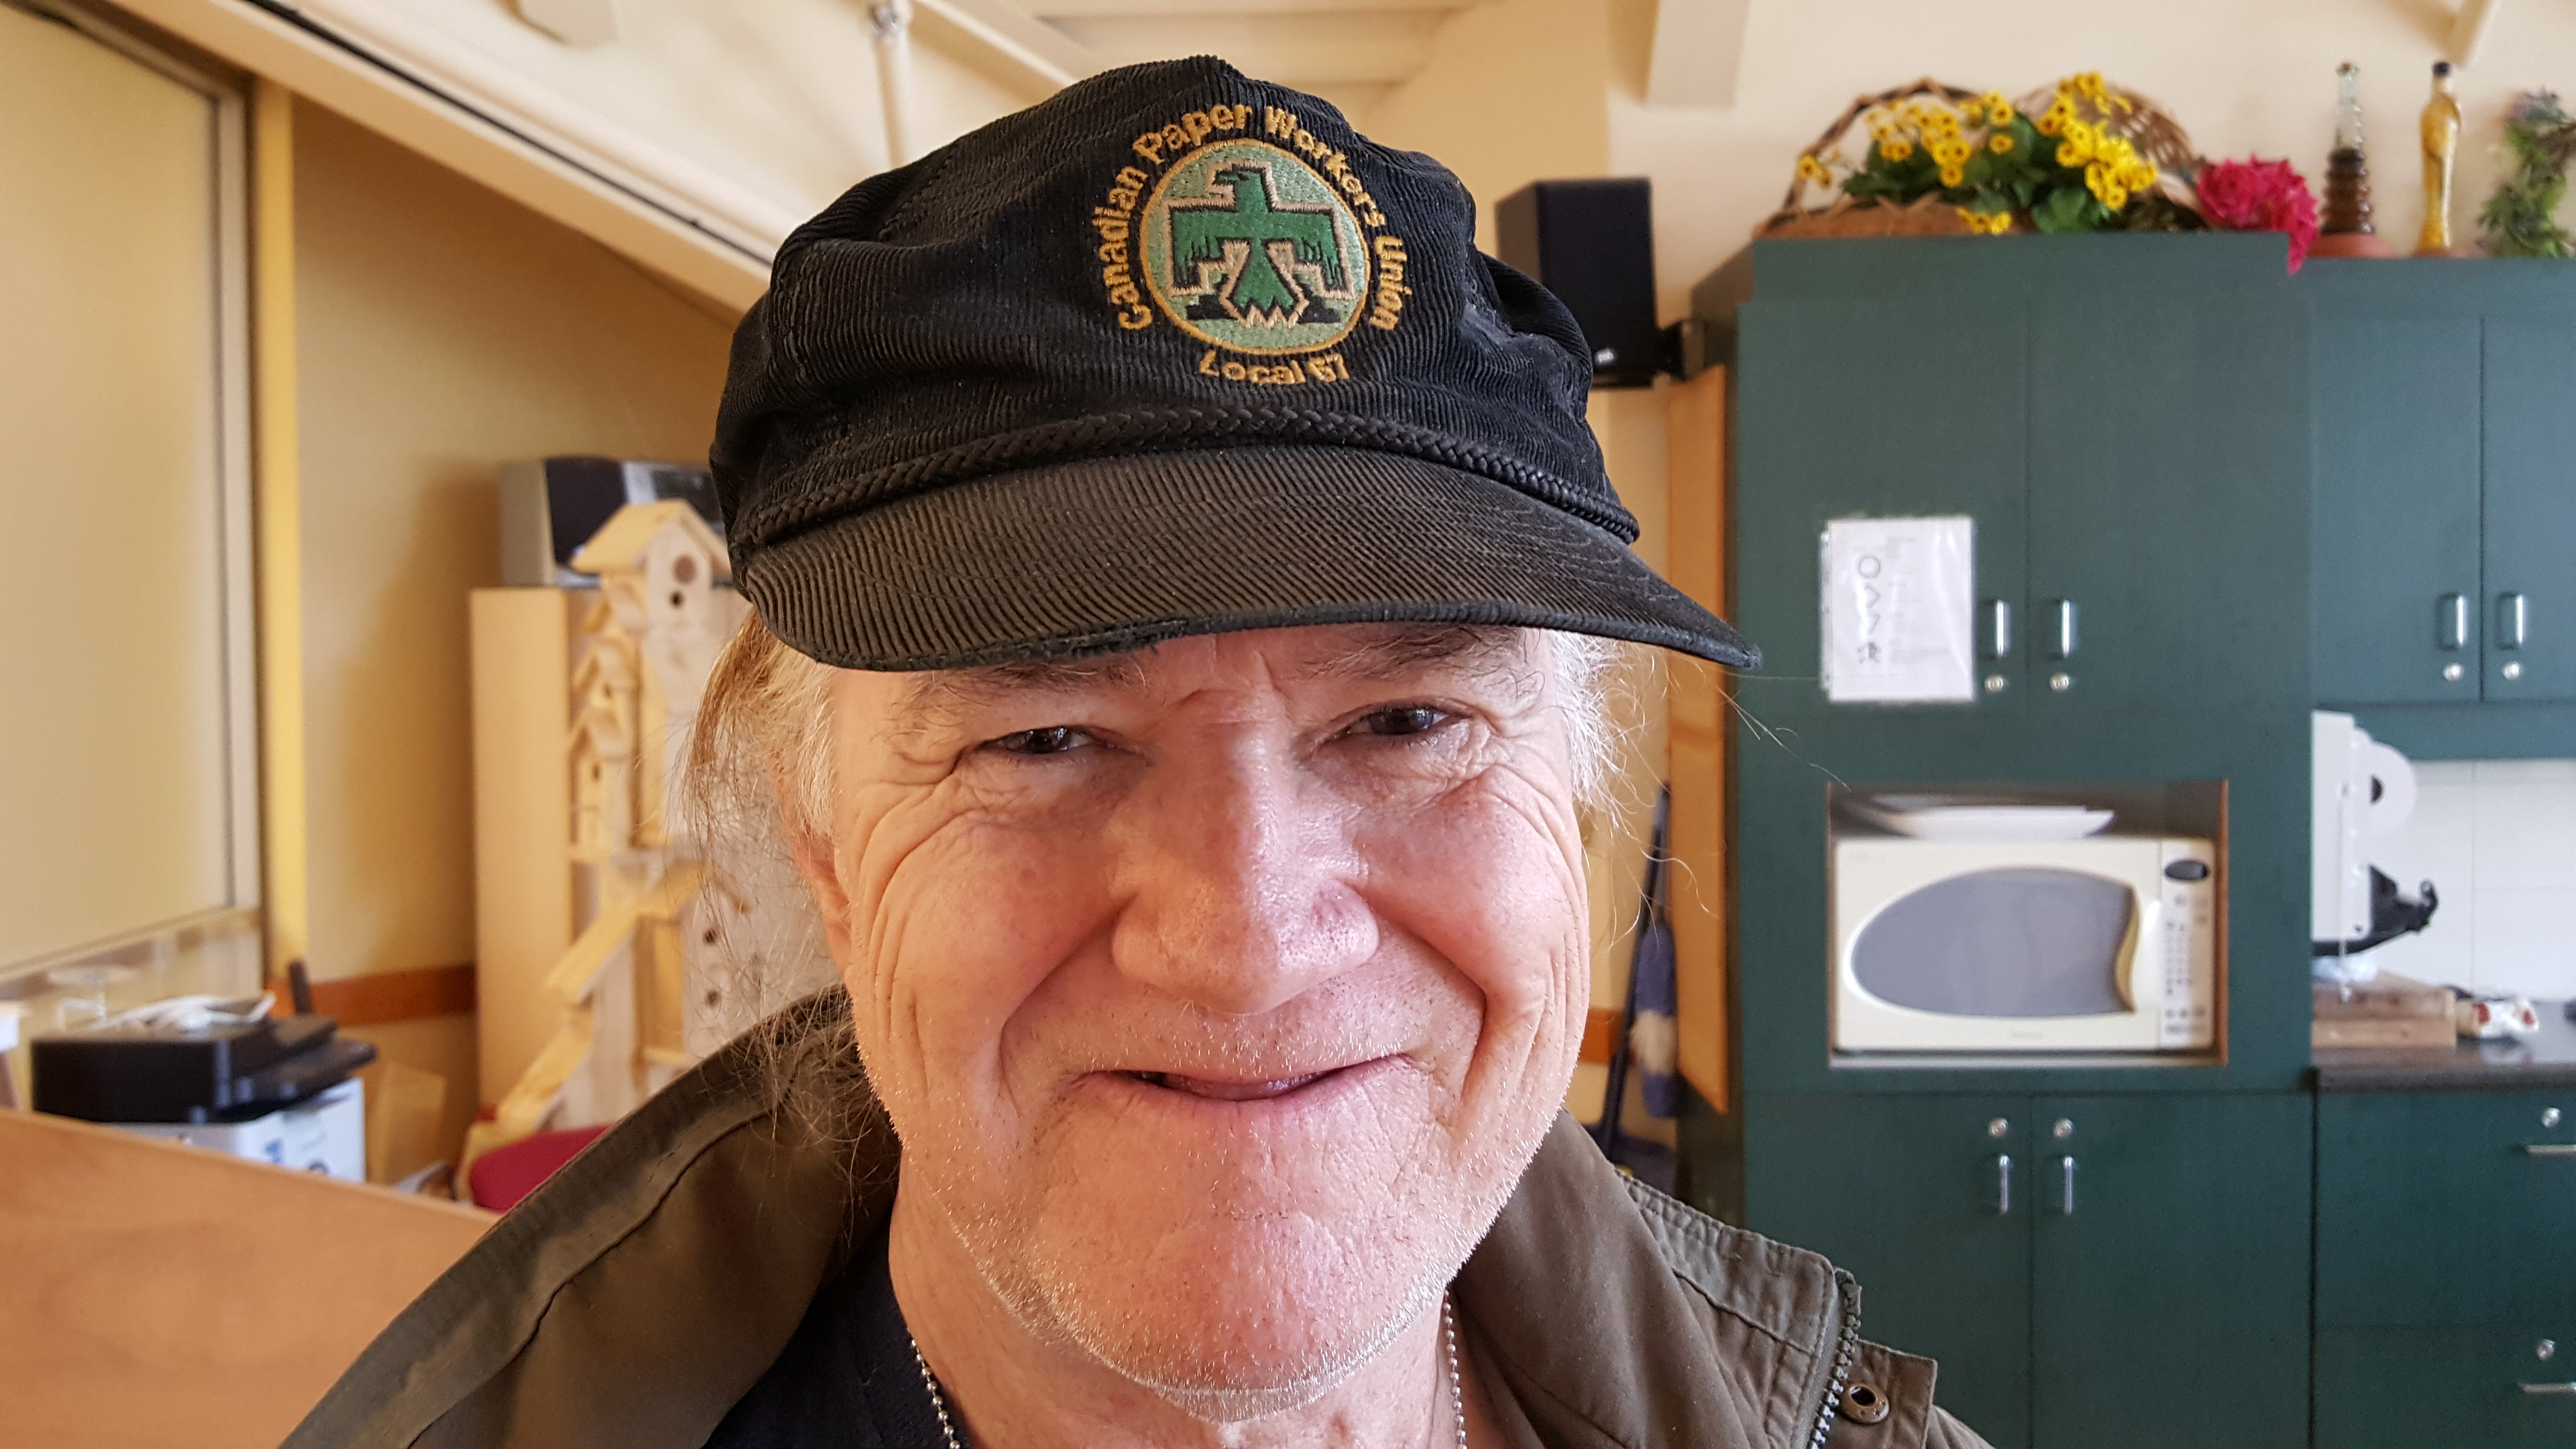 "Retired paper mill worker wearing a Canadian Paper Workers Union ball cap. He has a toothless grin and is standing in the kitchen ""Upstairs at Rome's"" at the retirees meet-up."